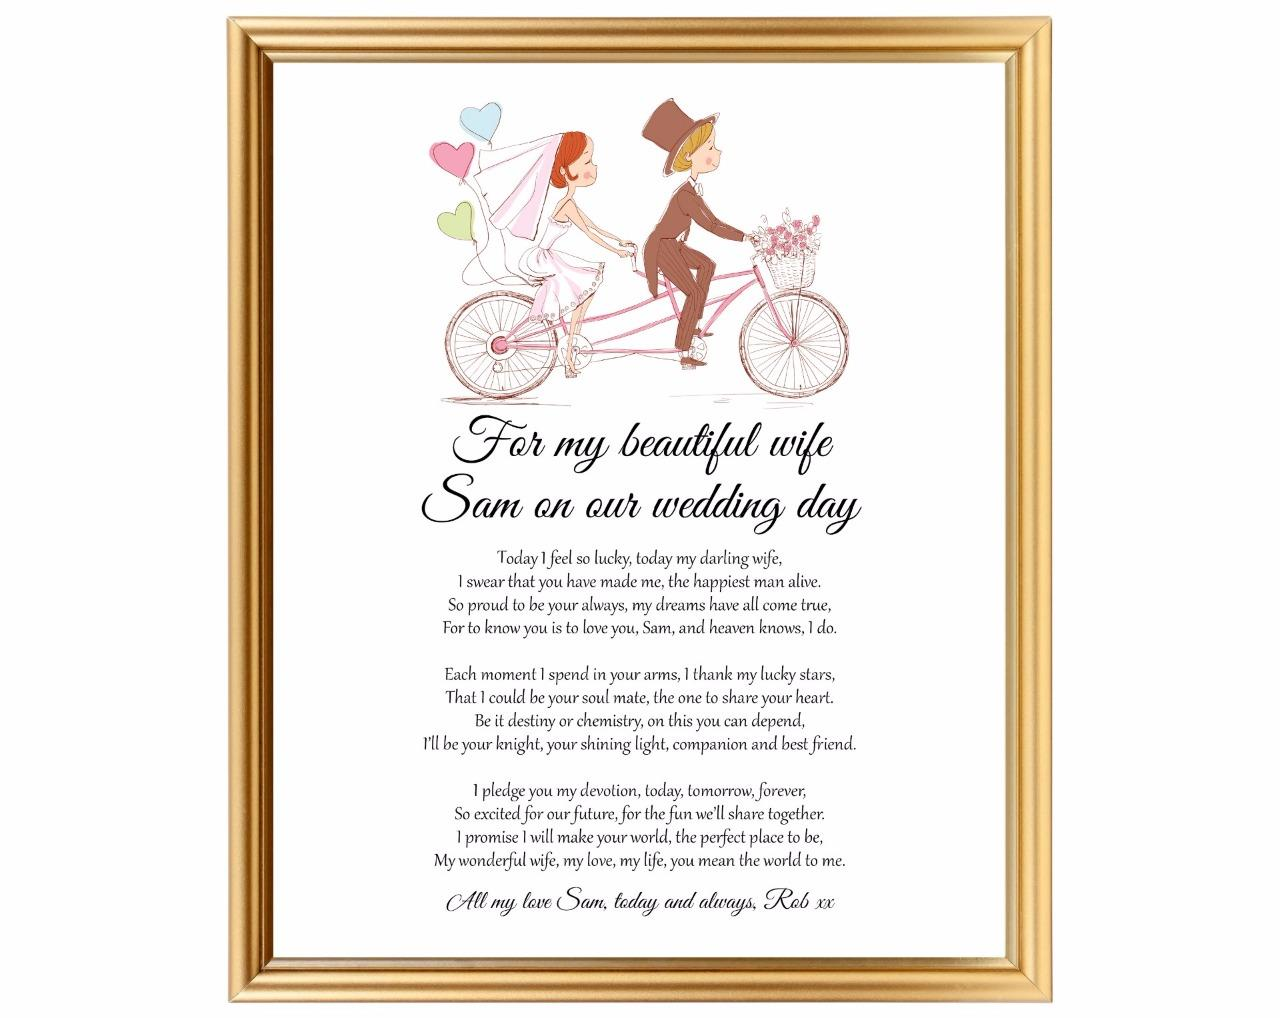 Wedding Day Gift For Wife: Wedding Gift For Wife